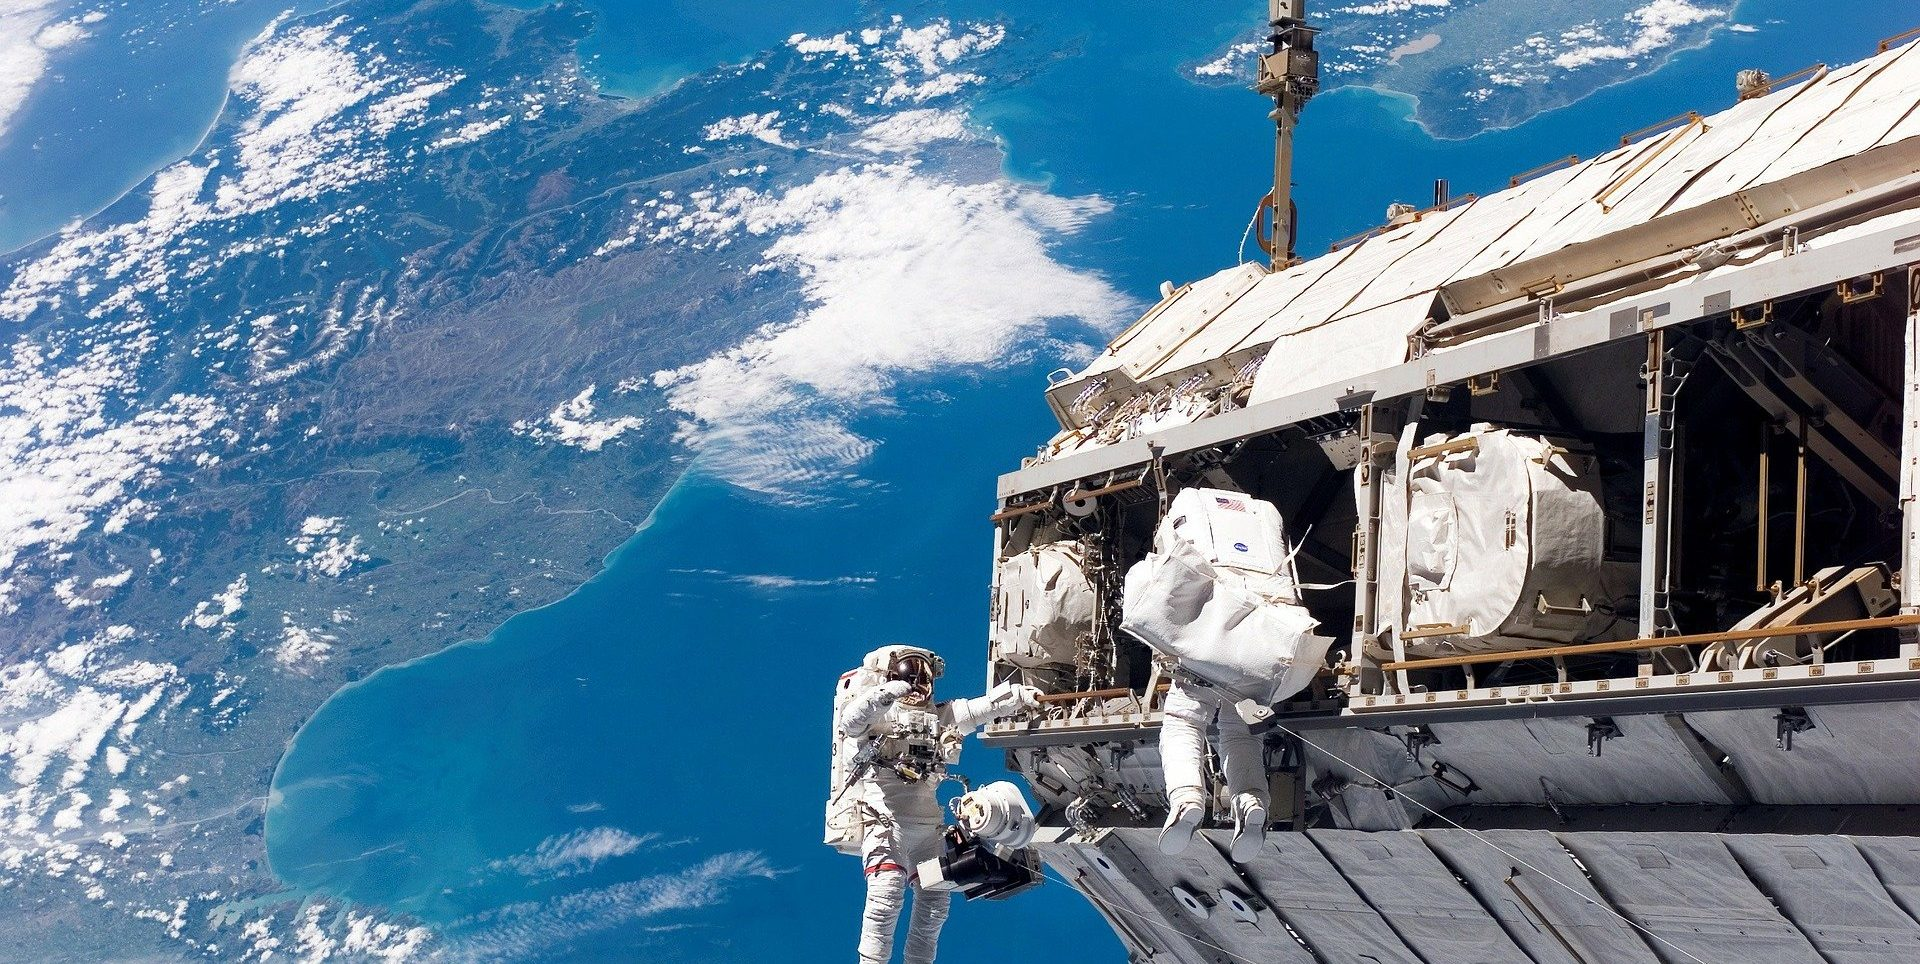 Two astronauts conduct a spacewalk.